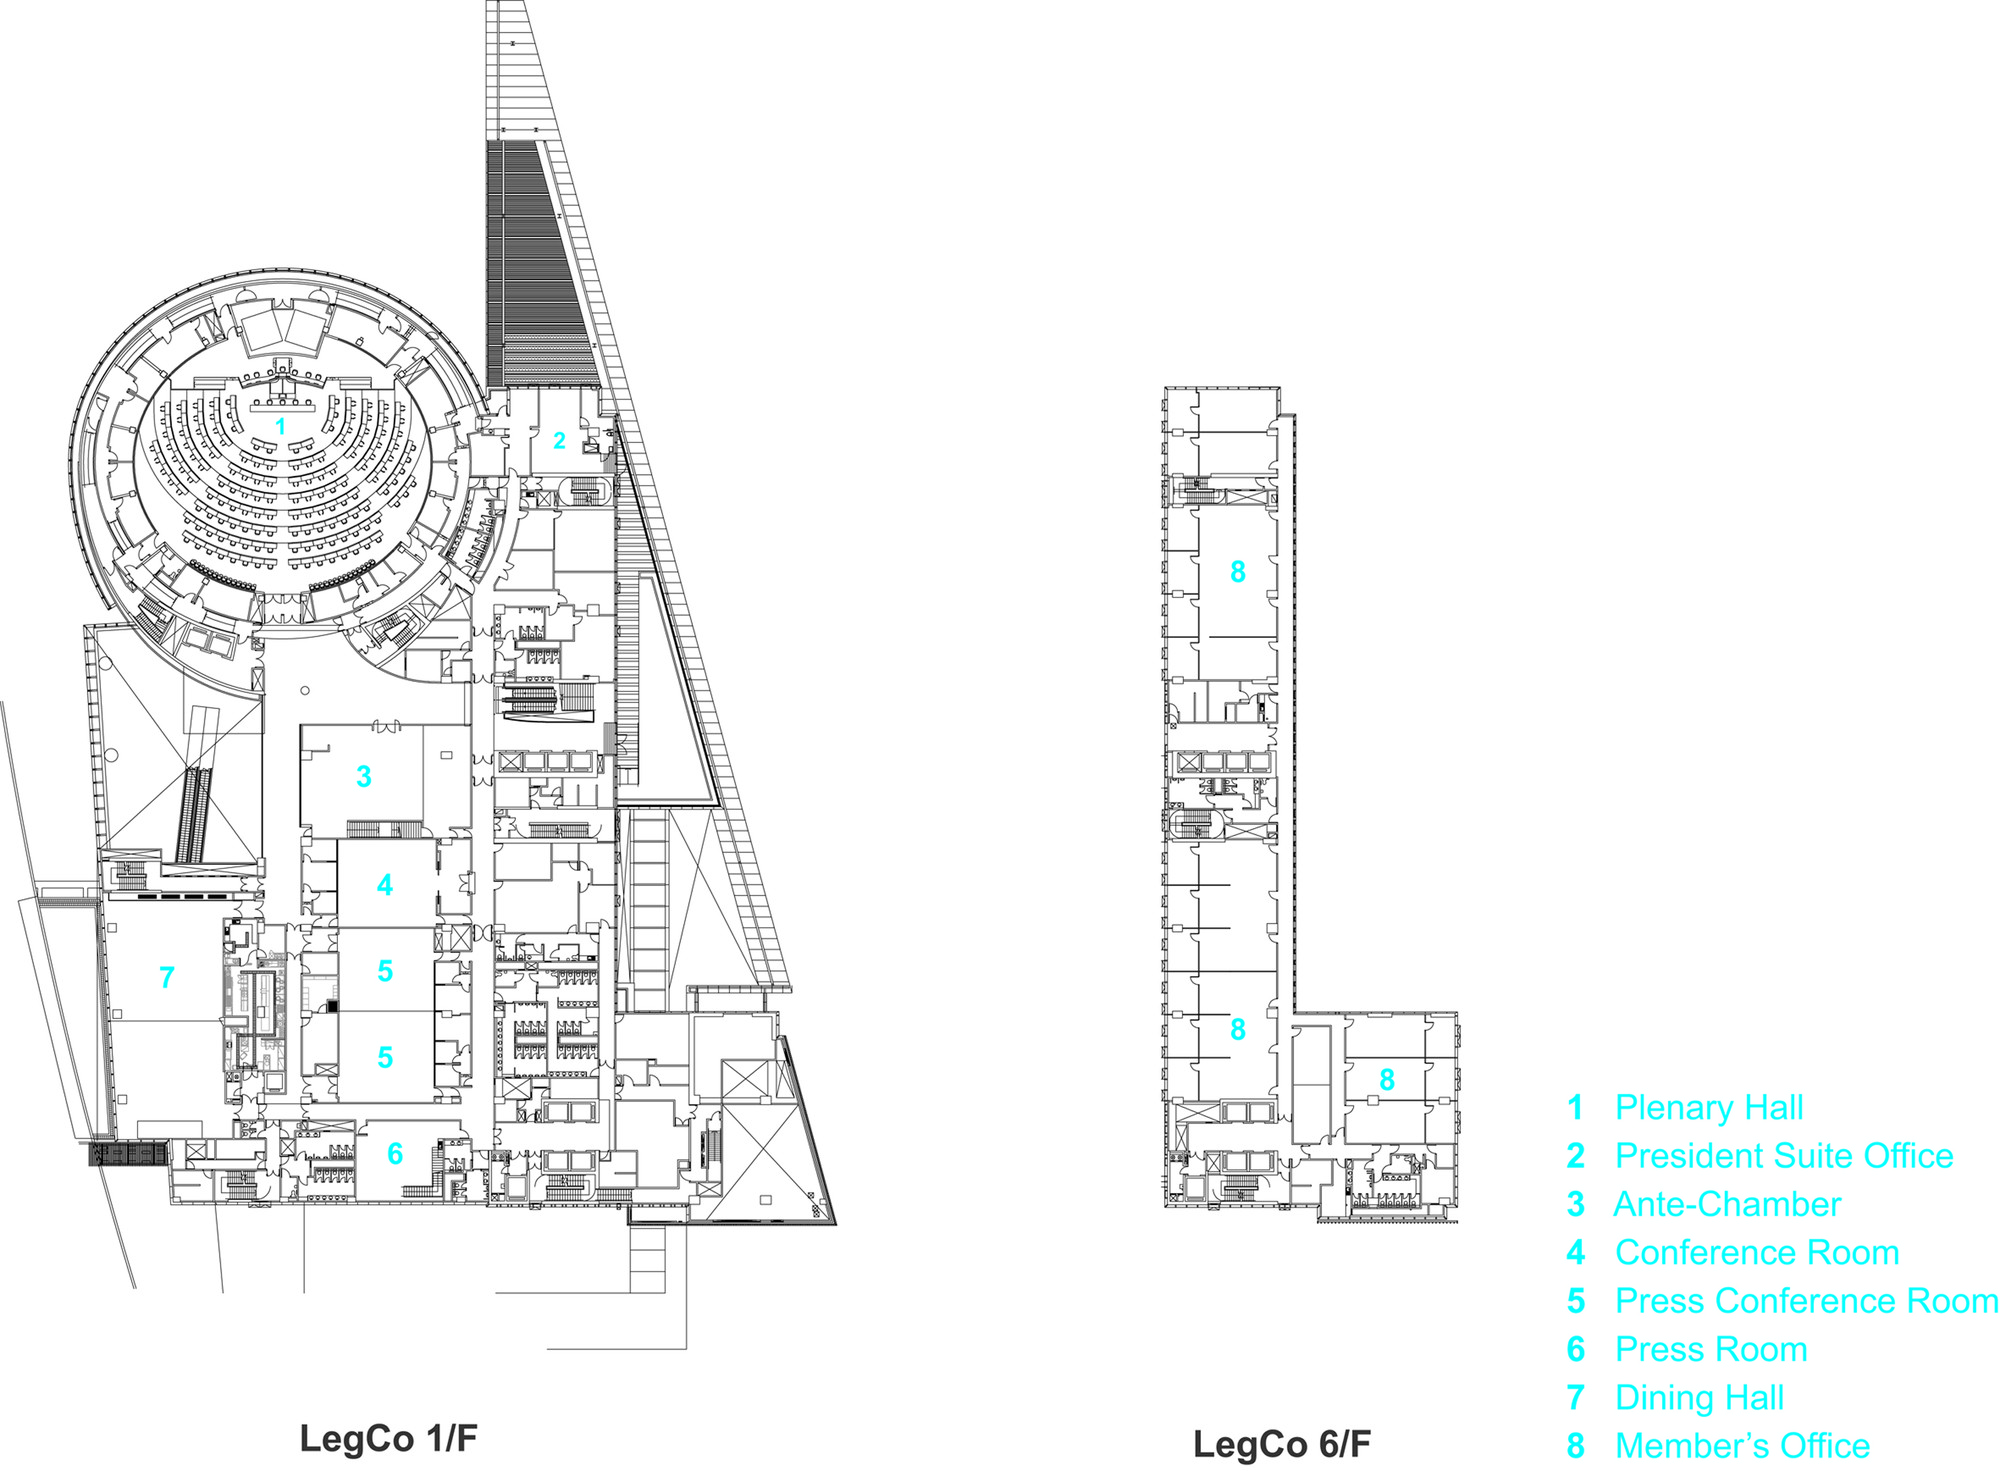 Hksar government headquarters rocco design architects archdaily Floor plan design website